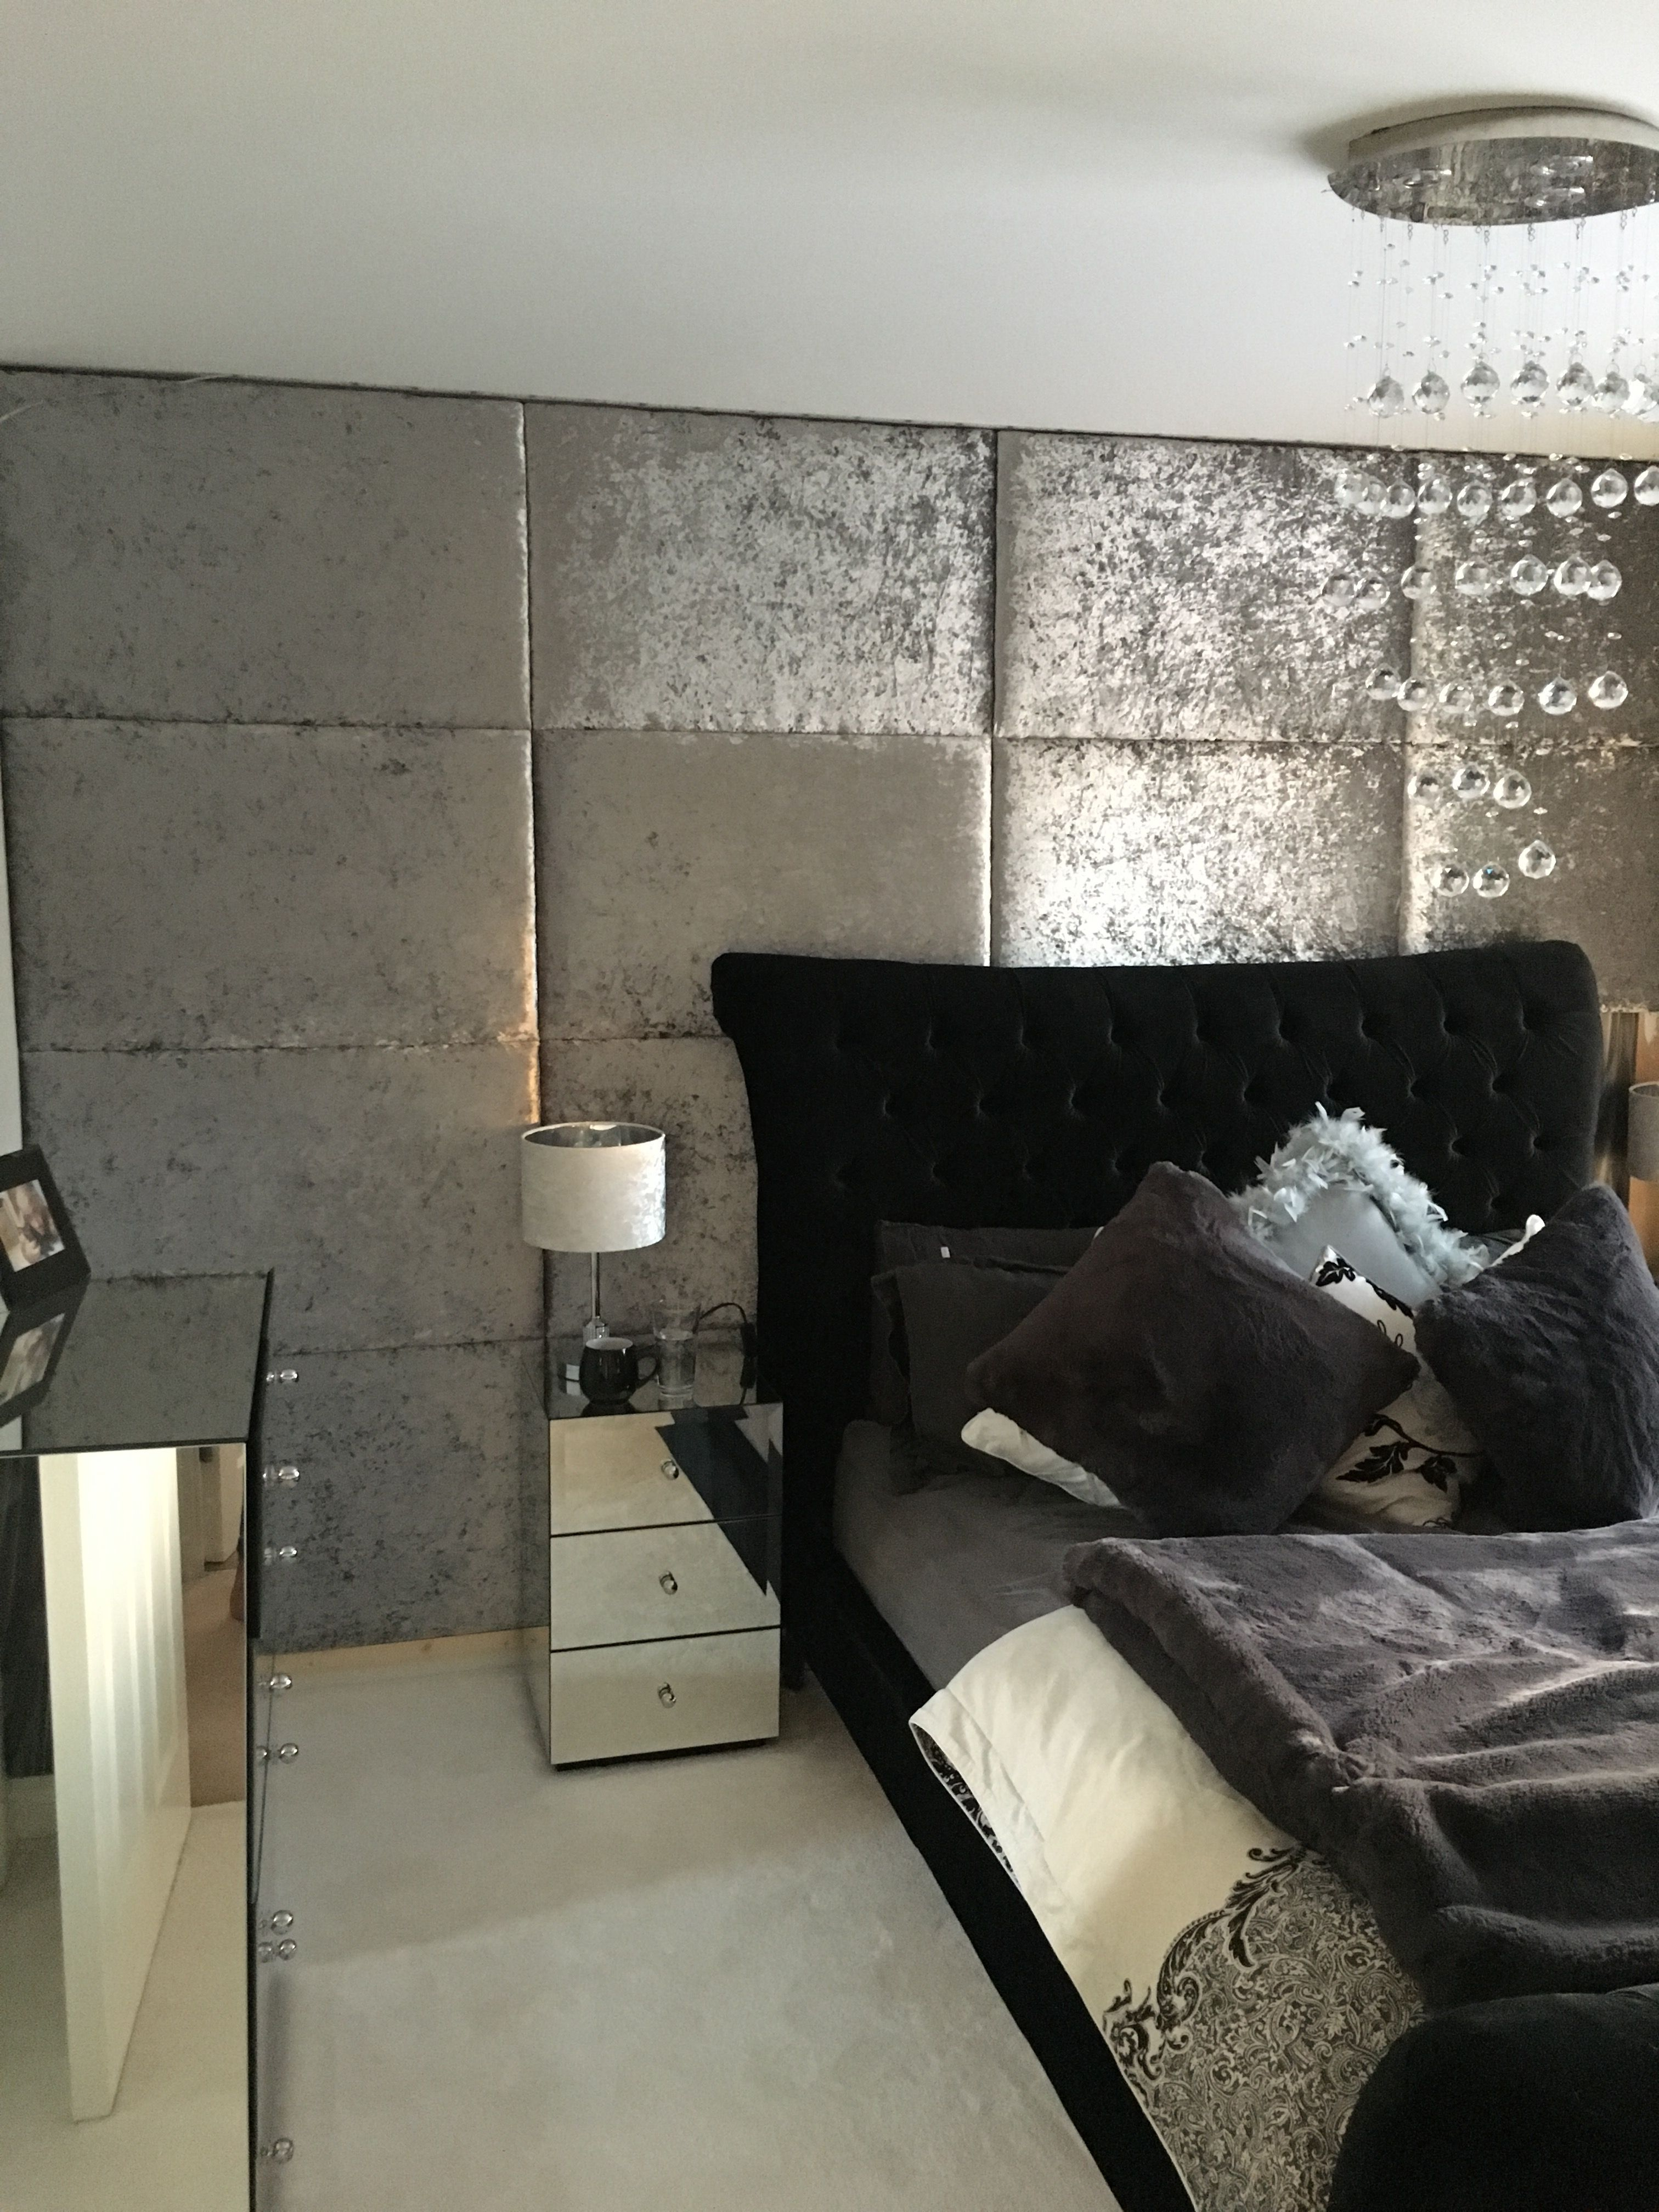 Luxury Crushed Velvet Silver Padded Wall Panels Bedroom Upholstered Walls Wall Panels Bedroom Padded Wall Panels